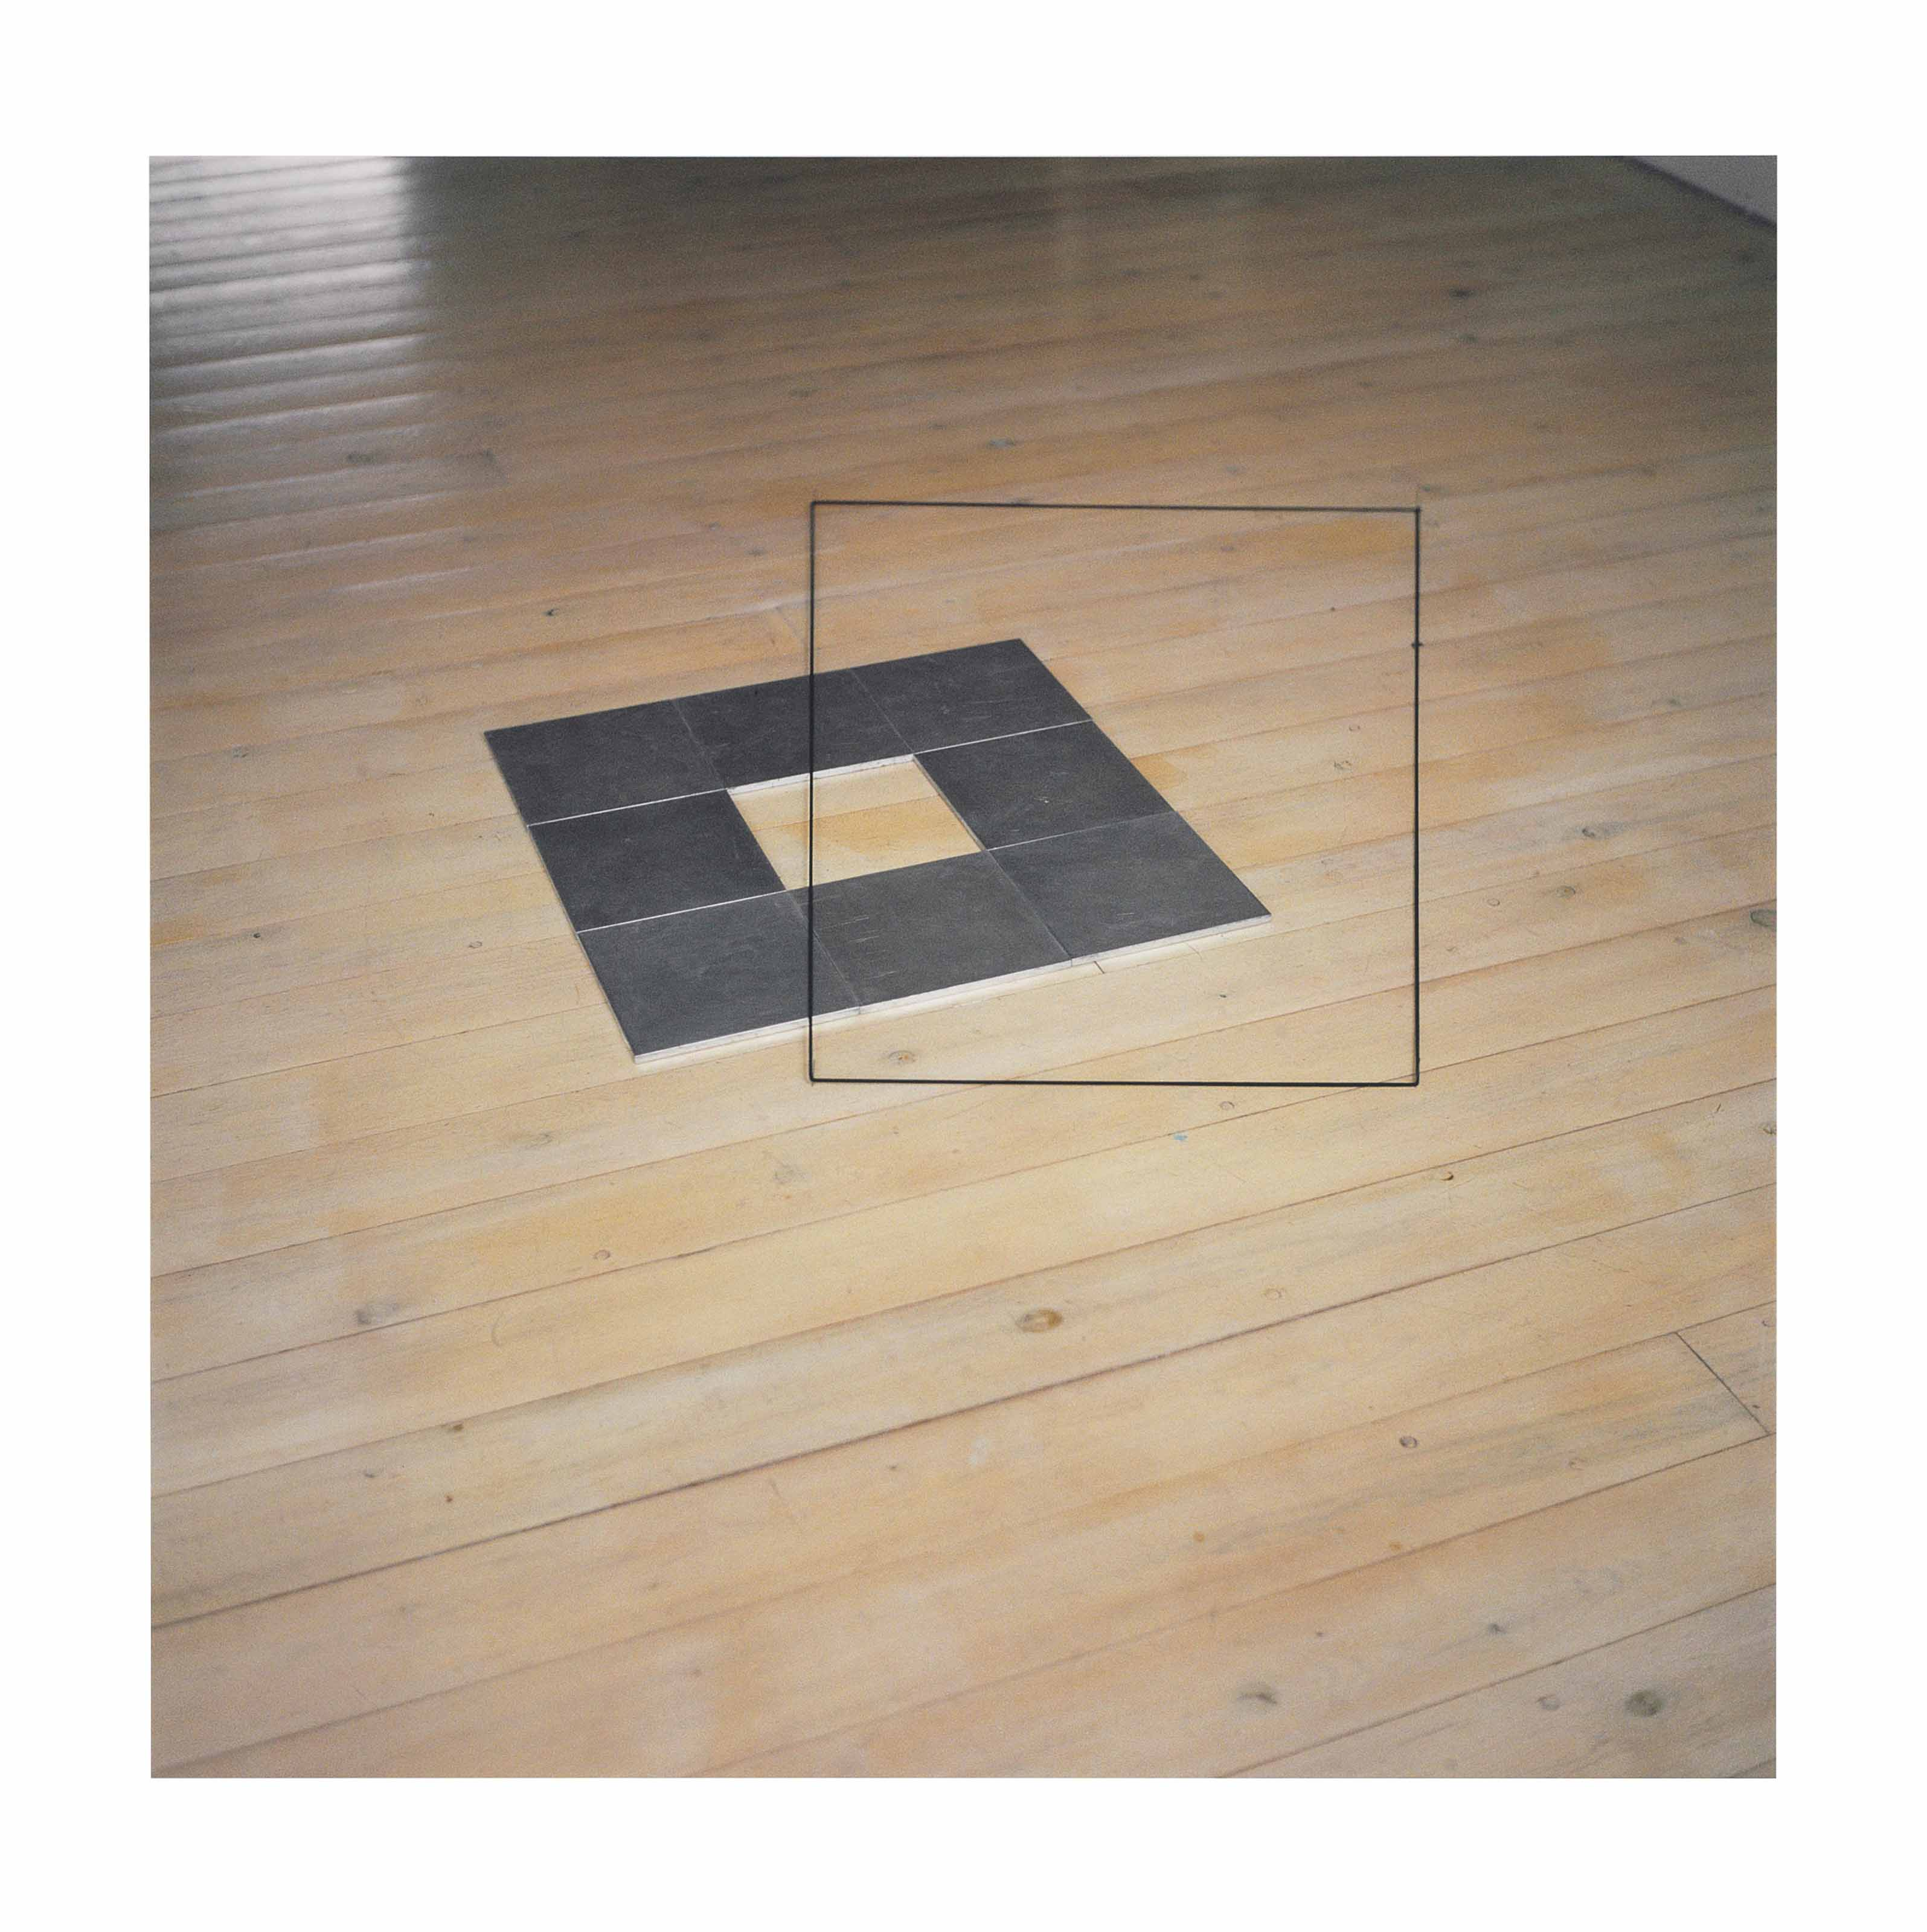 Jan Dibbets Jan Dibbets B 1941 Perspective Collection Quotcarl Andre